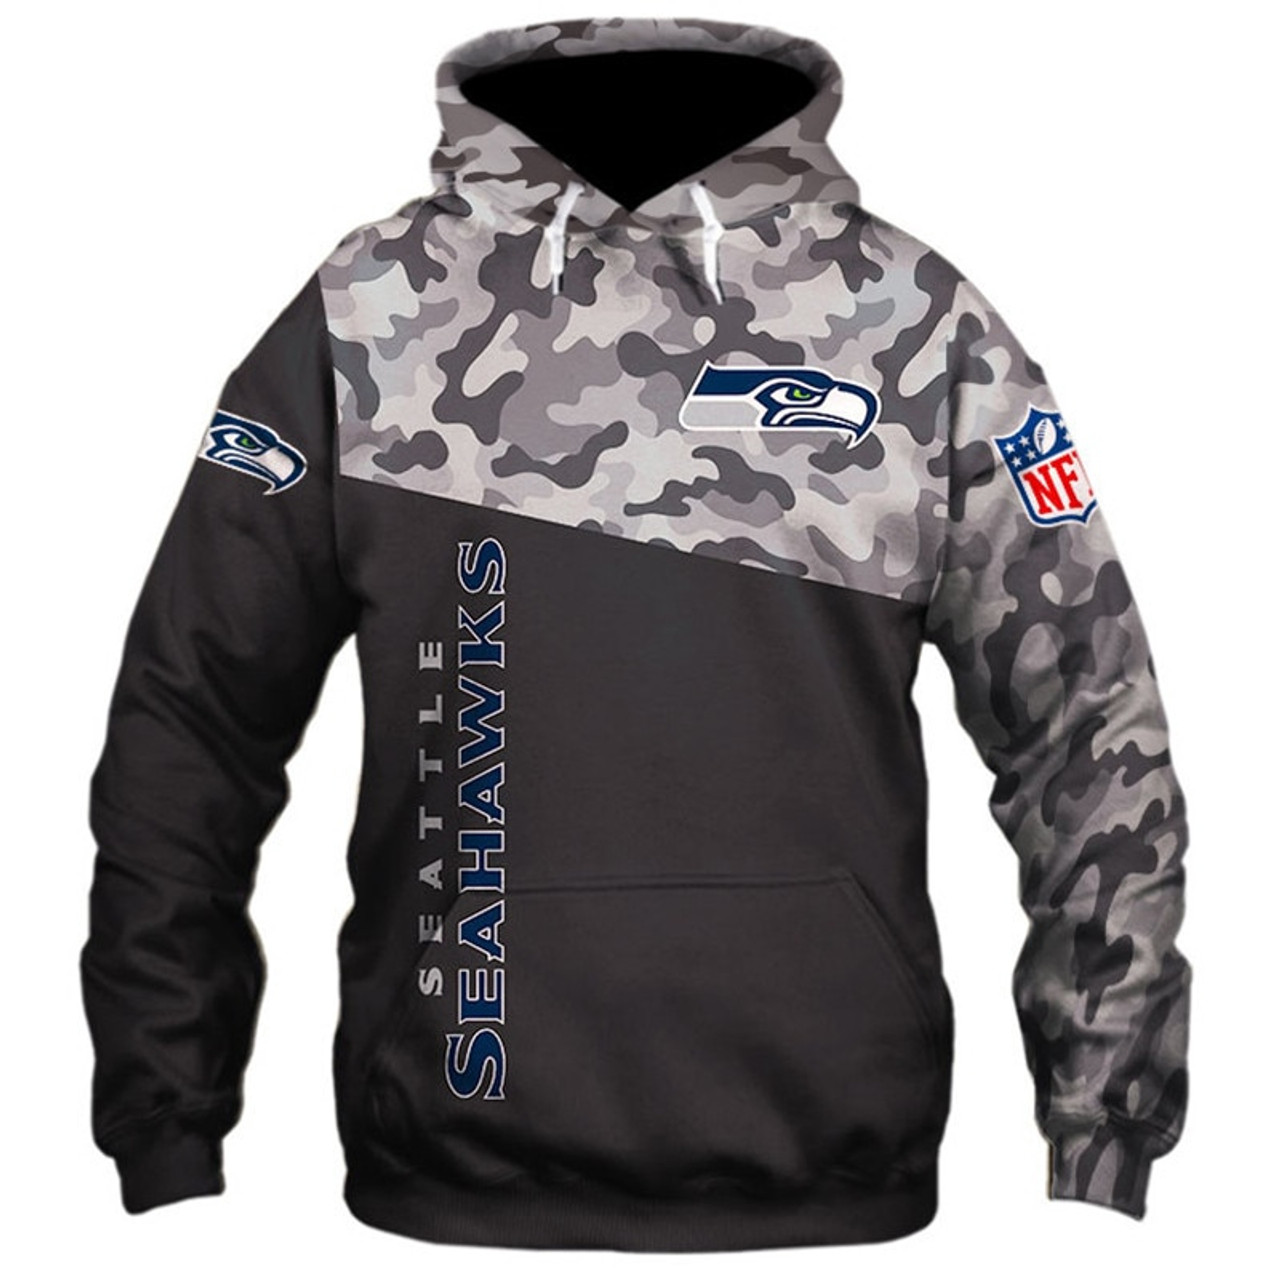 **(OFFICIAL N.F.L.SEATTLE SEAHAWKS CAMO.DESIGN PULLOVER HOODIES3D CUSTOM SEAHAWKS LOGOS & OFFICIAL SEAHAWKS TEAM COLORSNICE 3D DETAILED GRAPHIC PRIN